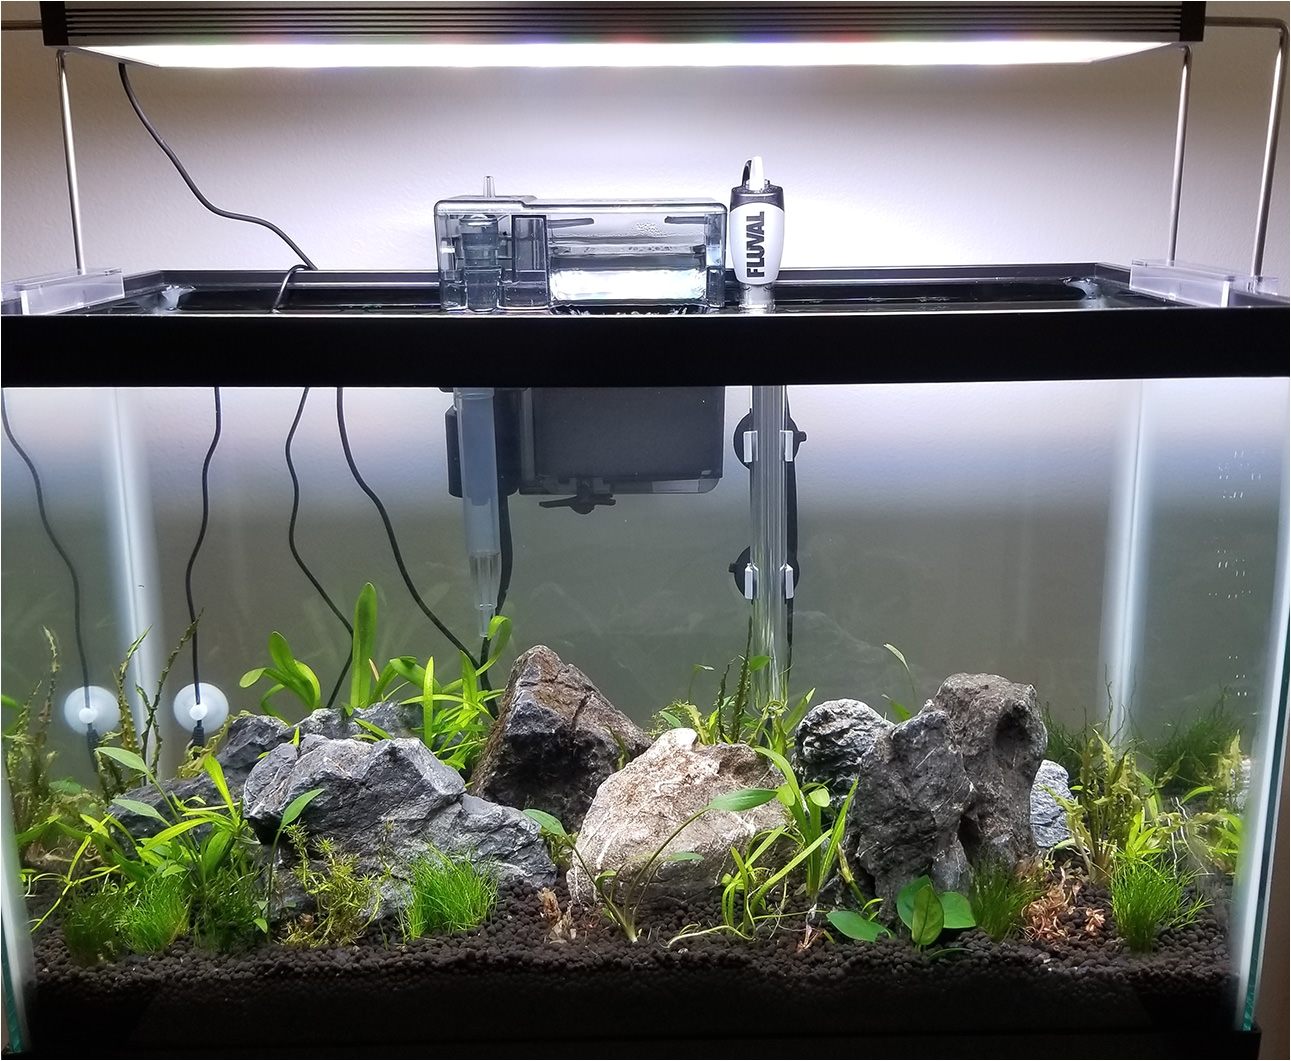 when my lights turn on in the morning i want my fish to feel like this is happening